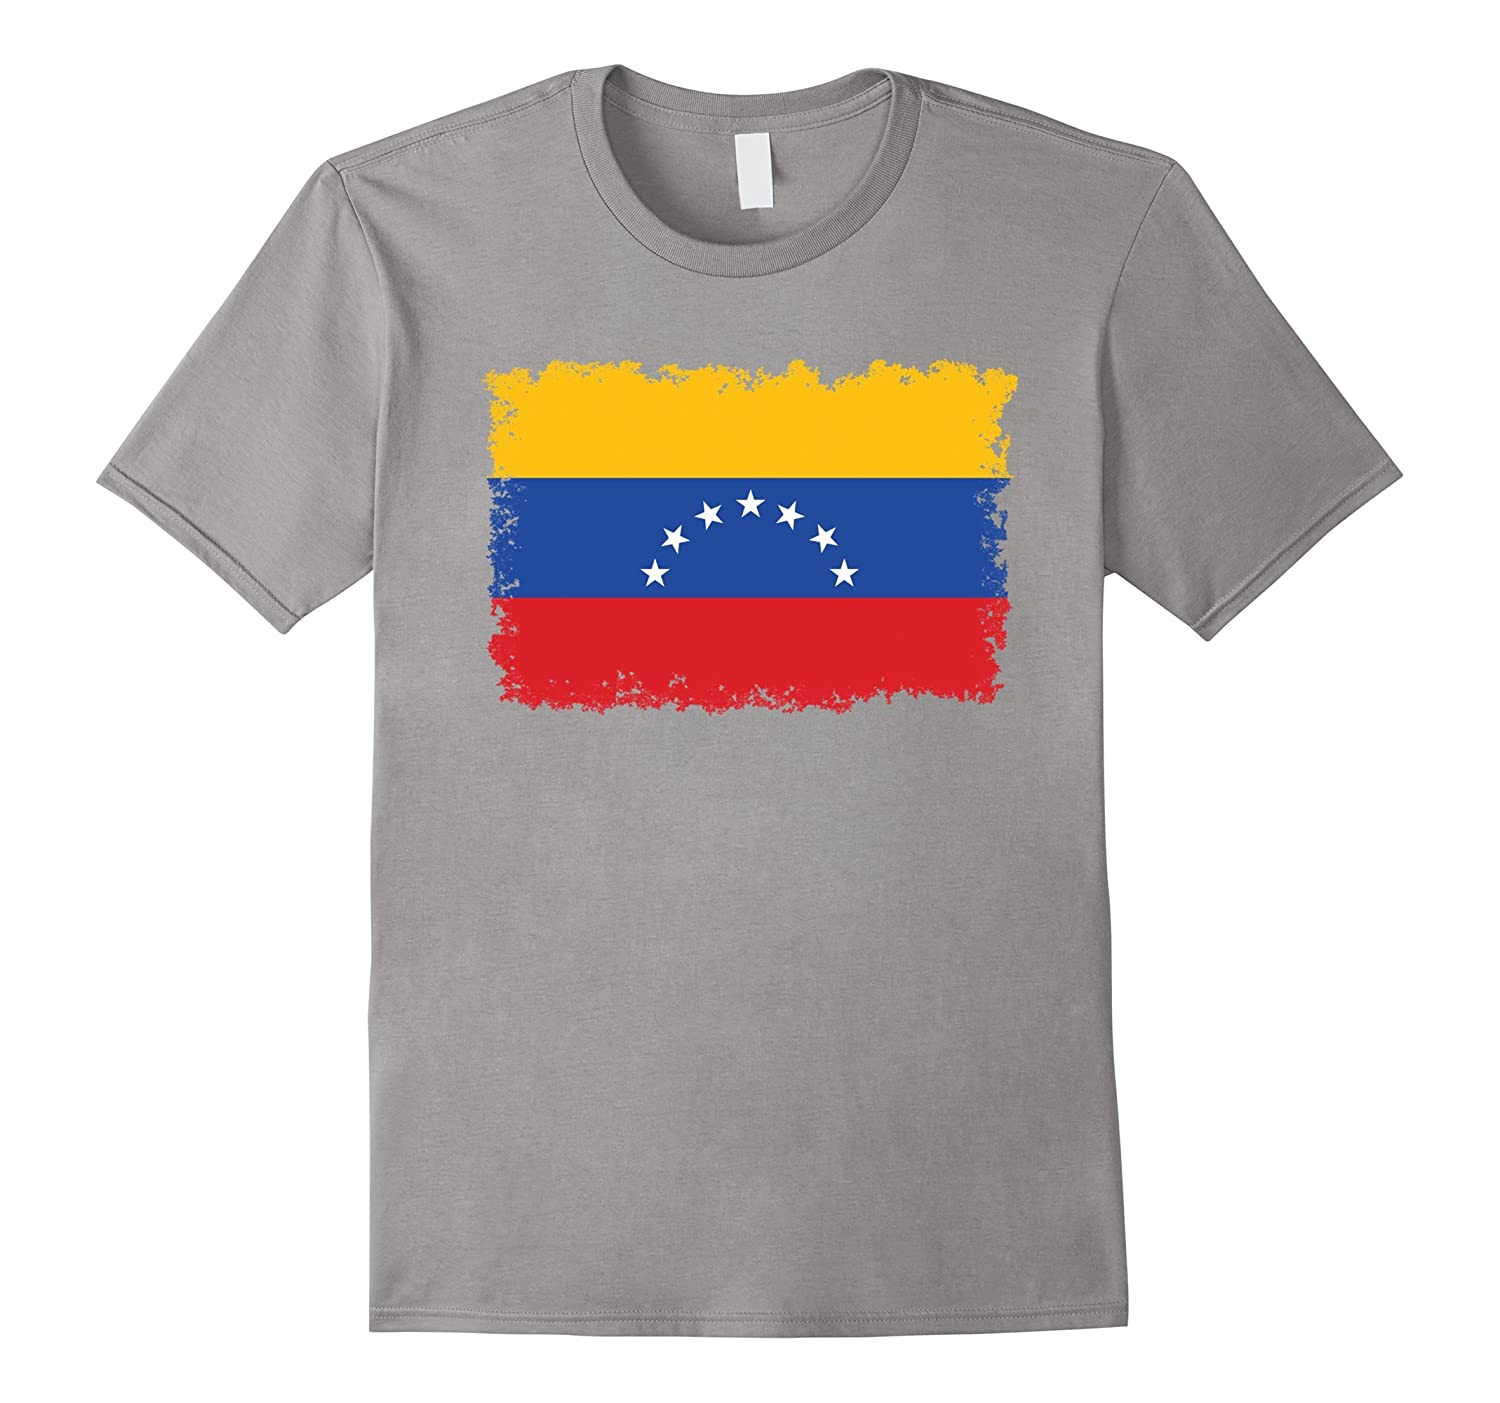 Venezuelan Flag 1930 to 1954 Seven Star Version-Vaci